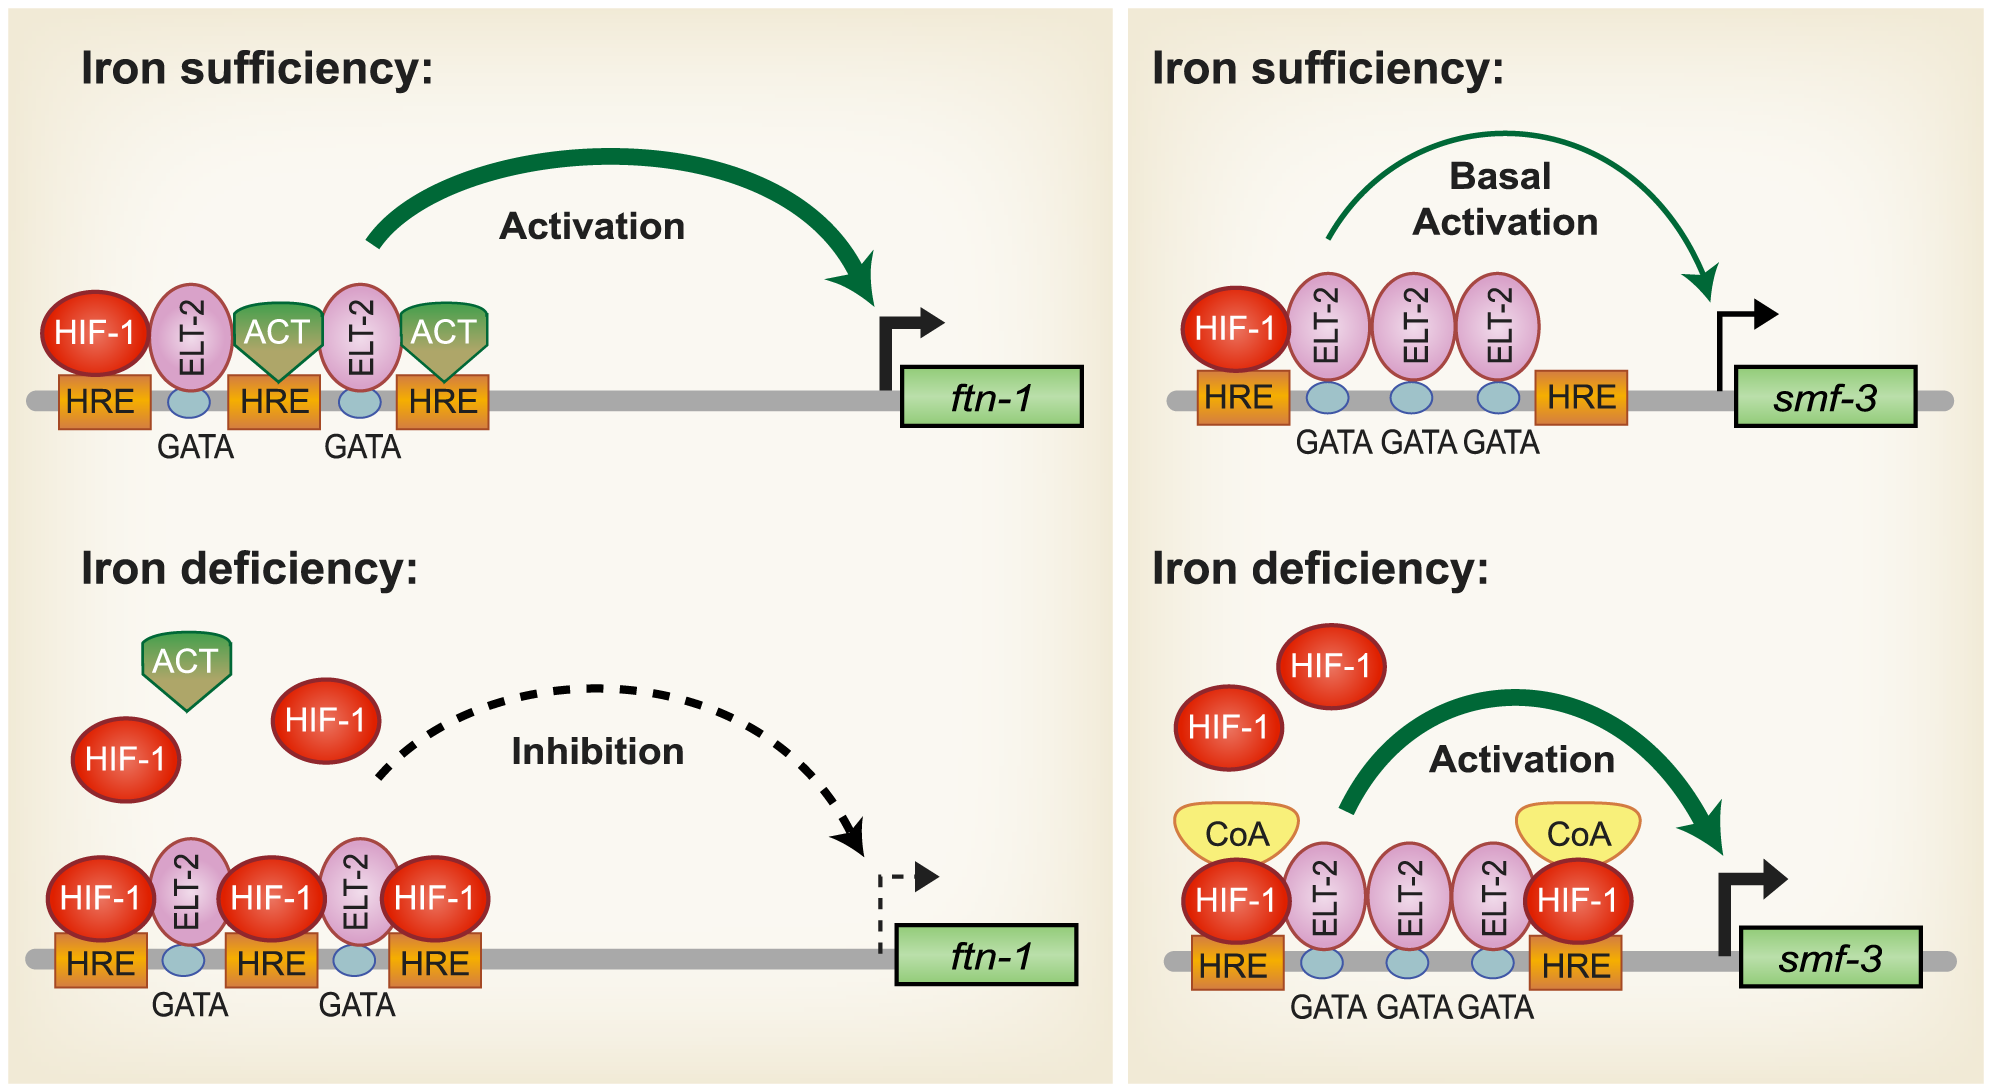 Model for HIF-1 iron-dependent activation and inhibition of intestinal iron uptake and storage.